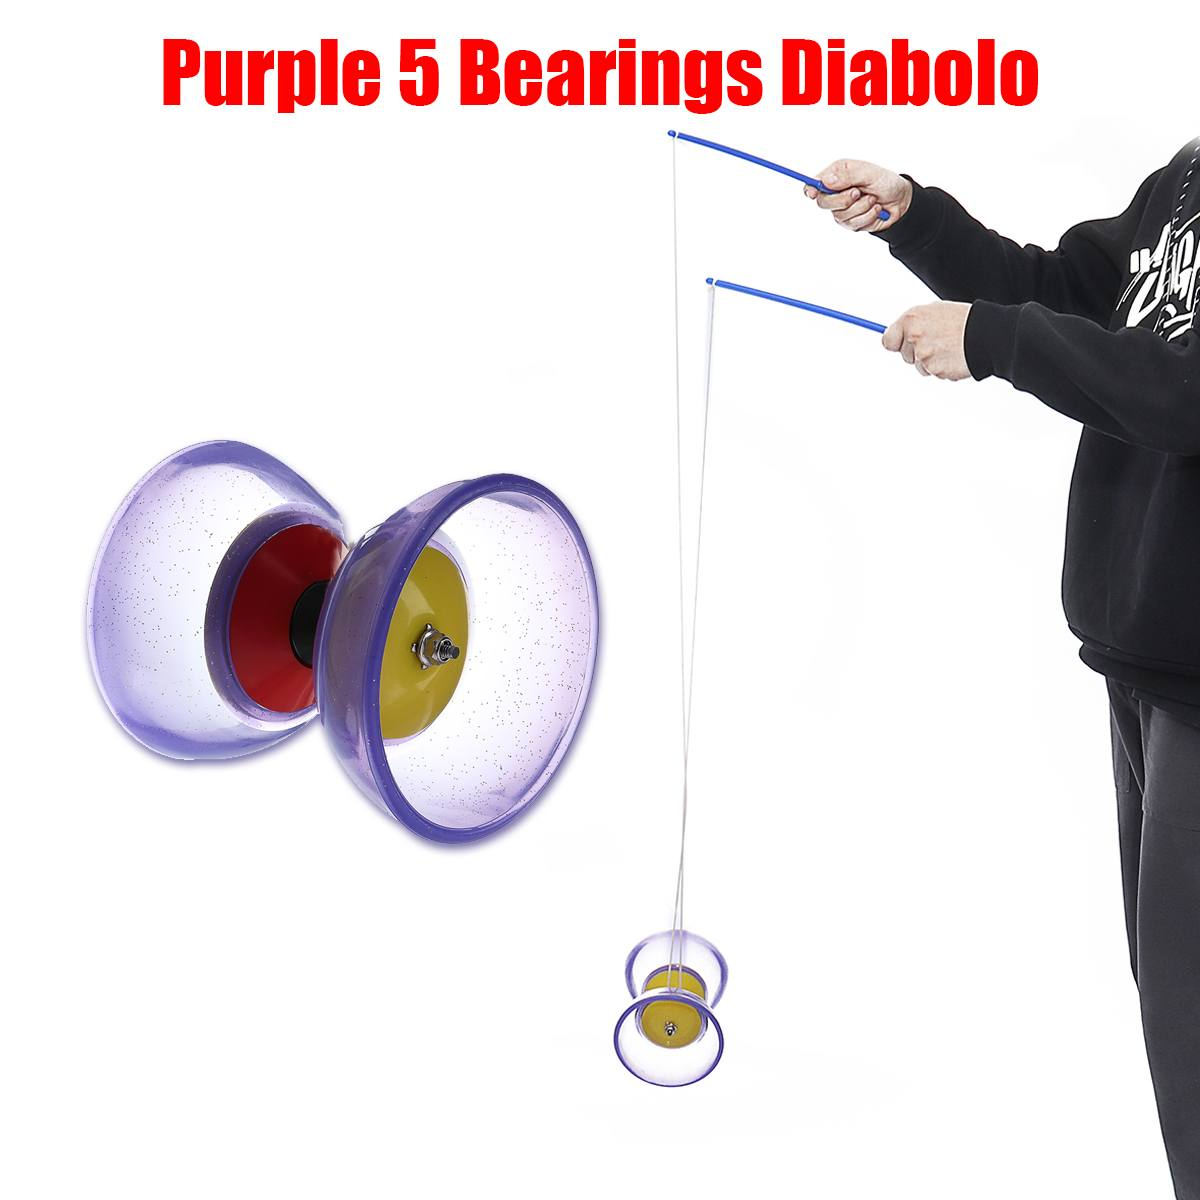 Plastic 5-Bearing Diabolo With Handsticks & String Juggling Toy for Professionals Beginners Children Adult YOYO Set Classic Toy(China)